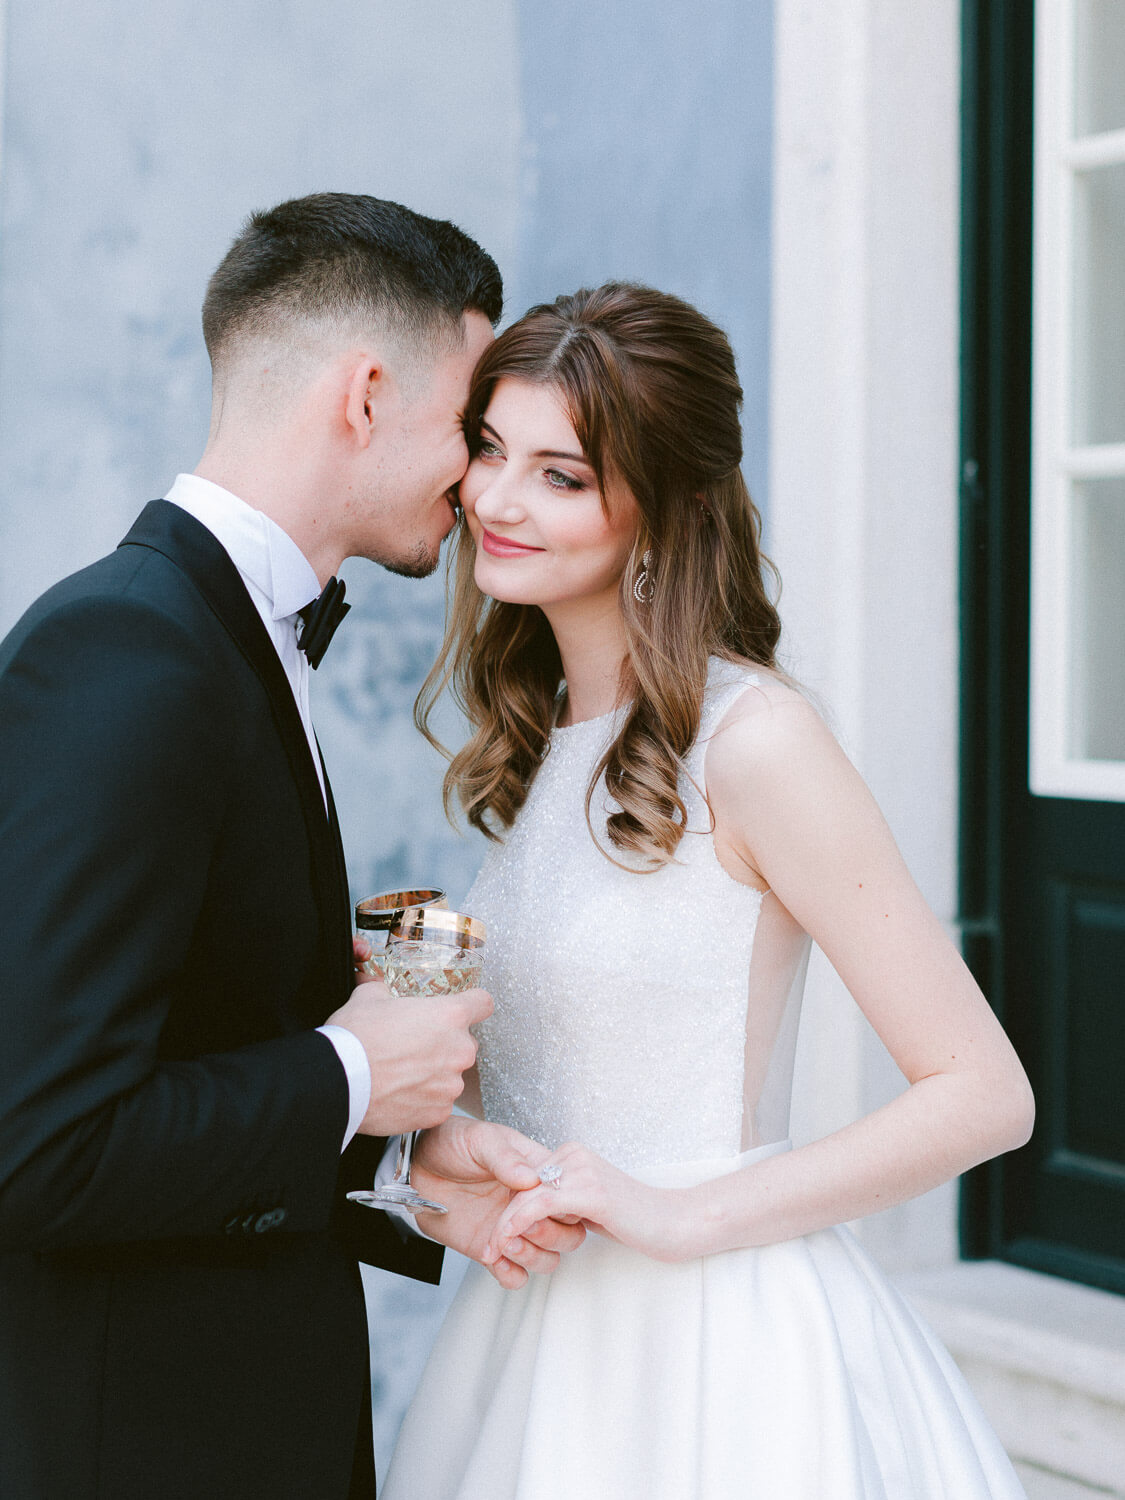 Groom whispering to his bride on the wedding day in Portugal by Portugal Wedding Photographer